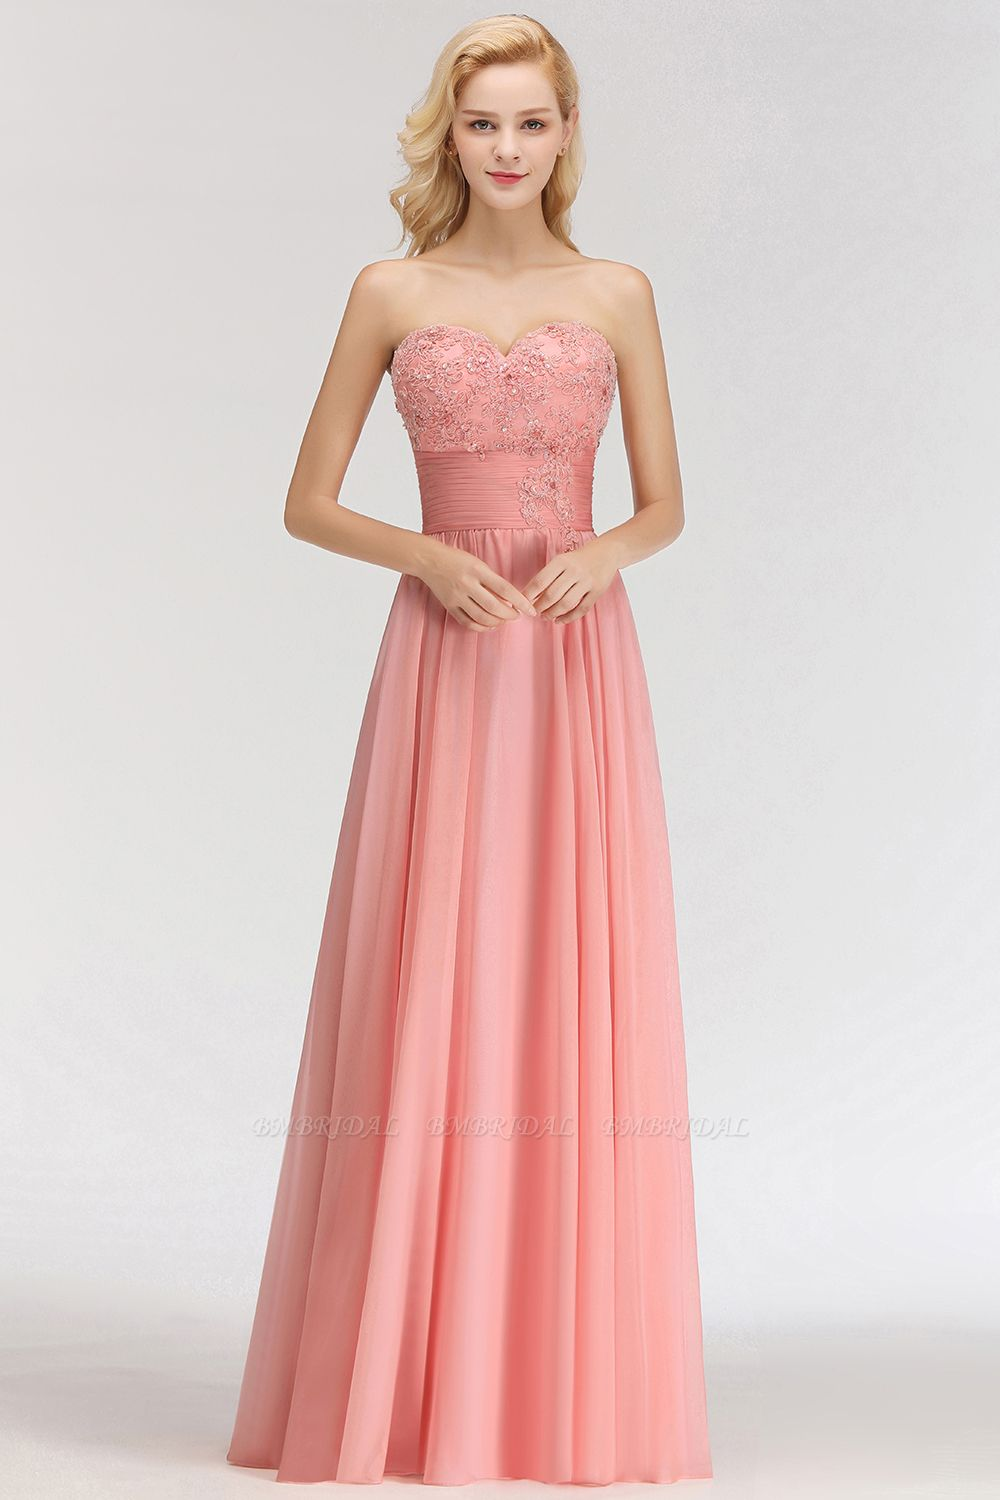 Elegant Sweetheart Ruffle Pink Bridesmaid Dresses with Appliques